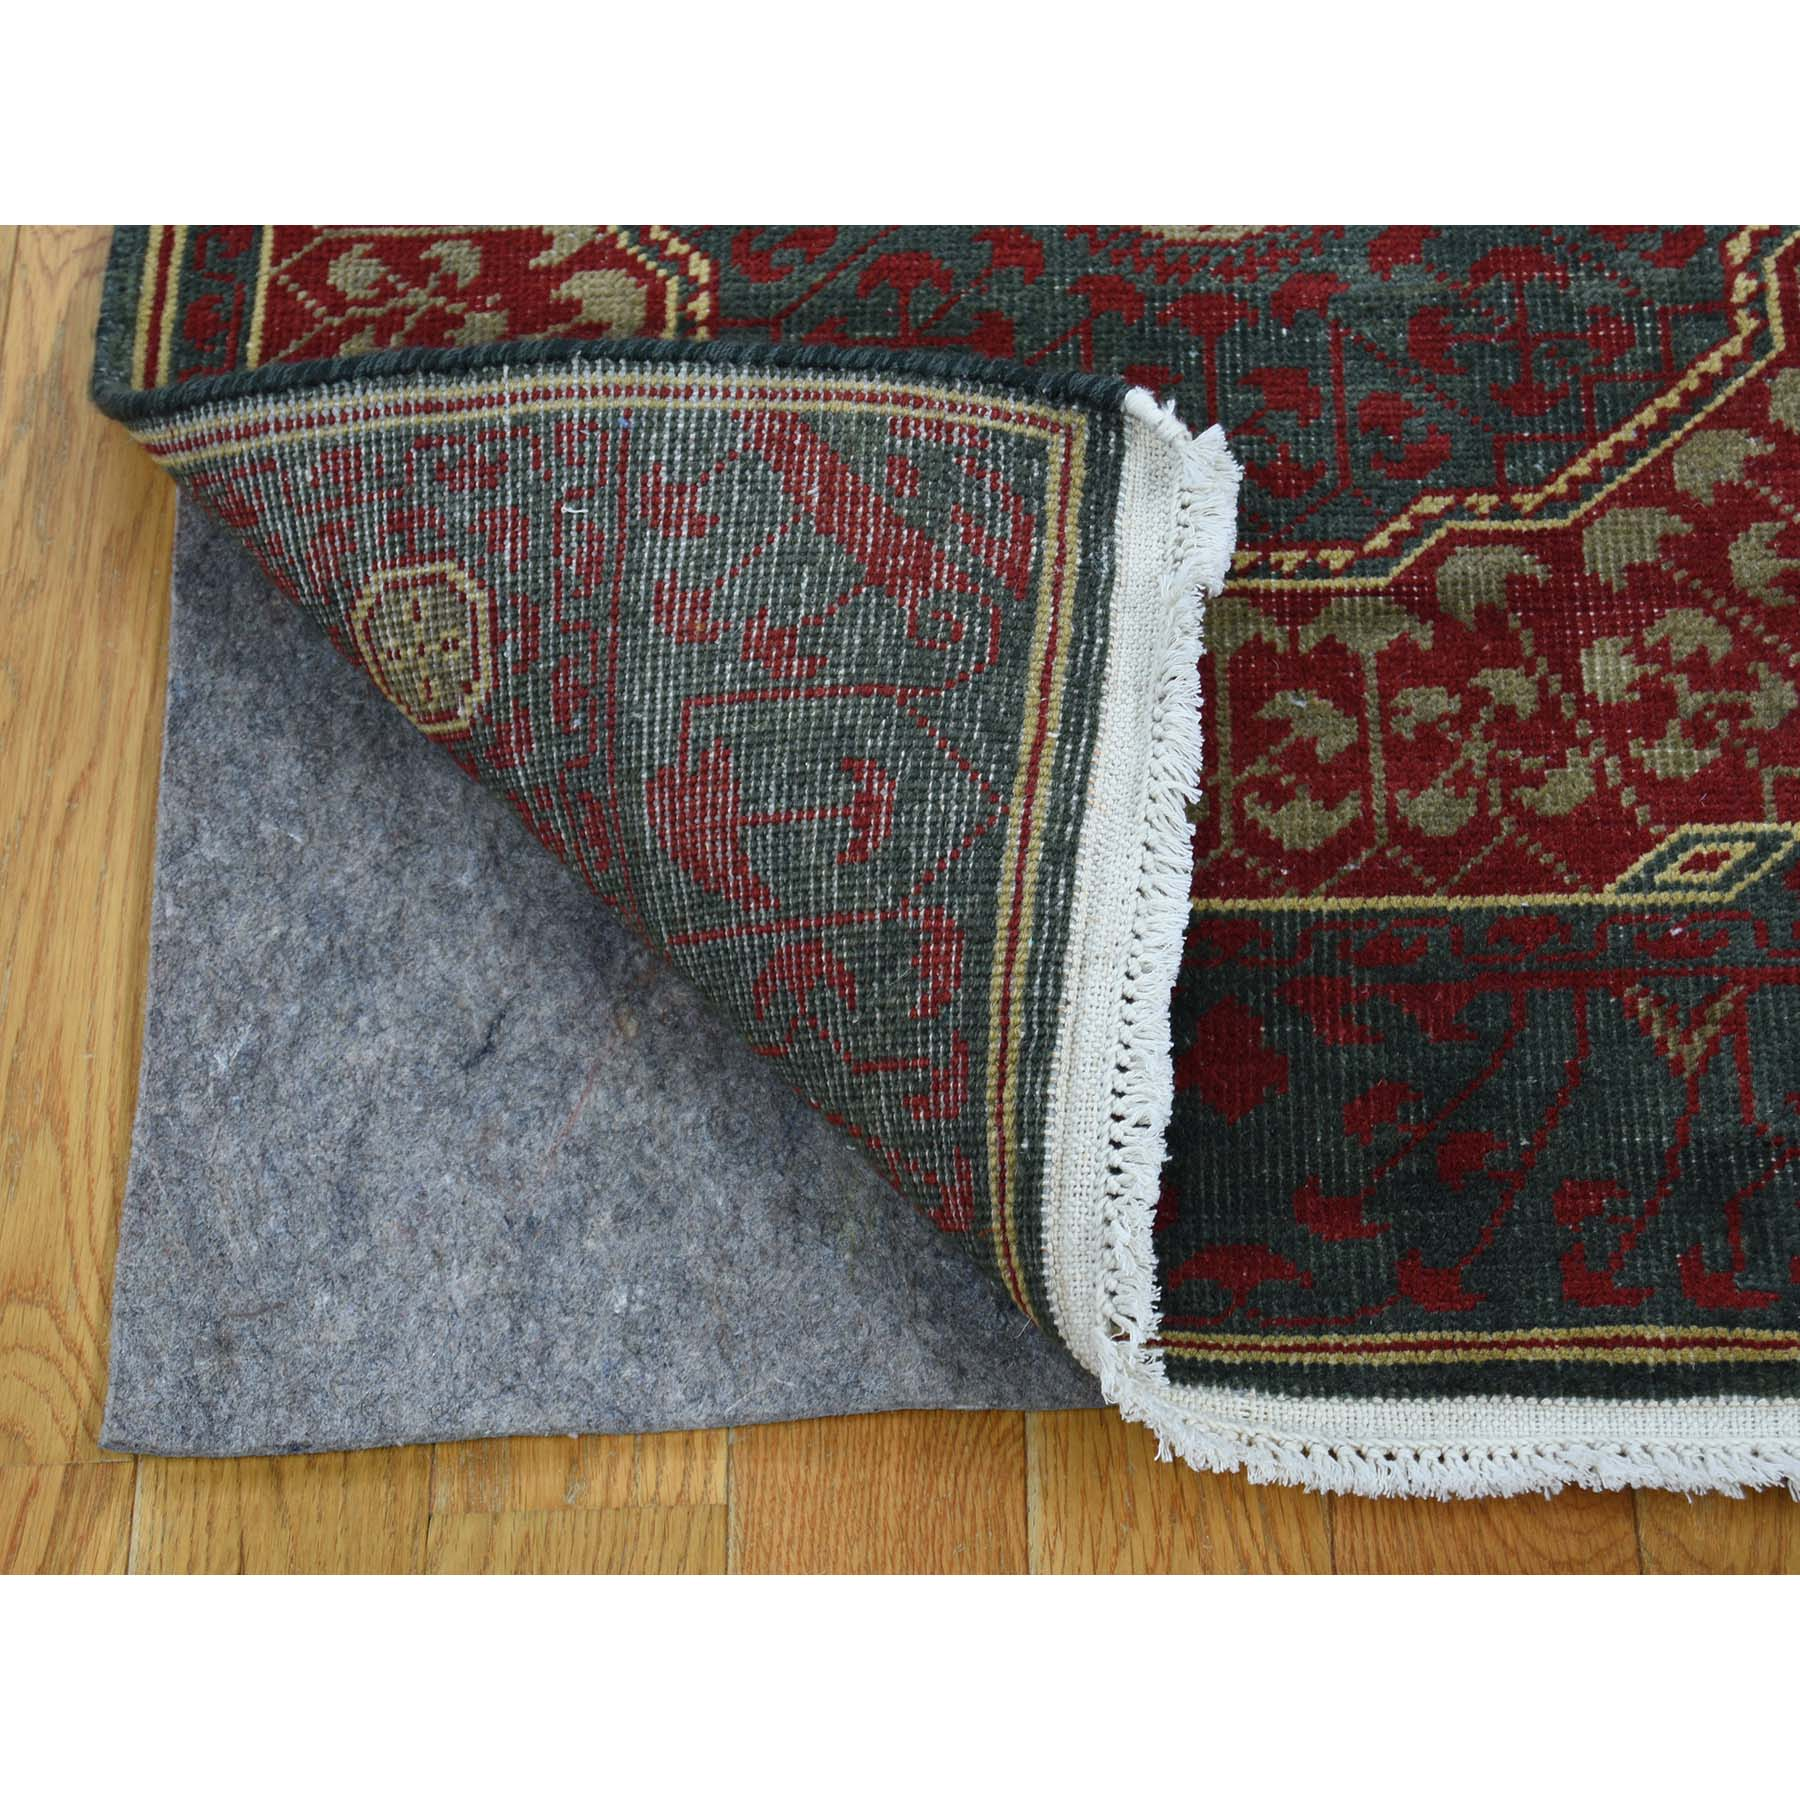 2-5 x10- Vintage Look Mamluk Zero Pile Shaved Low Worn Wool Runner Rug